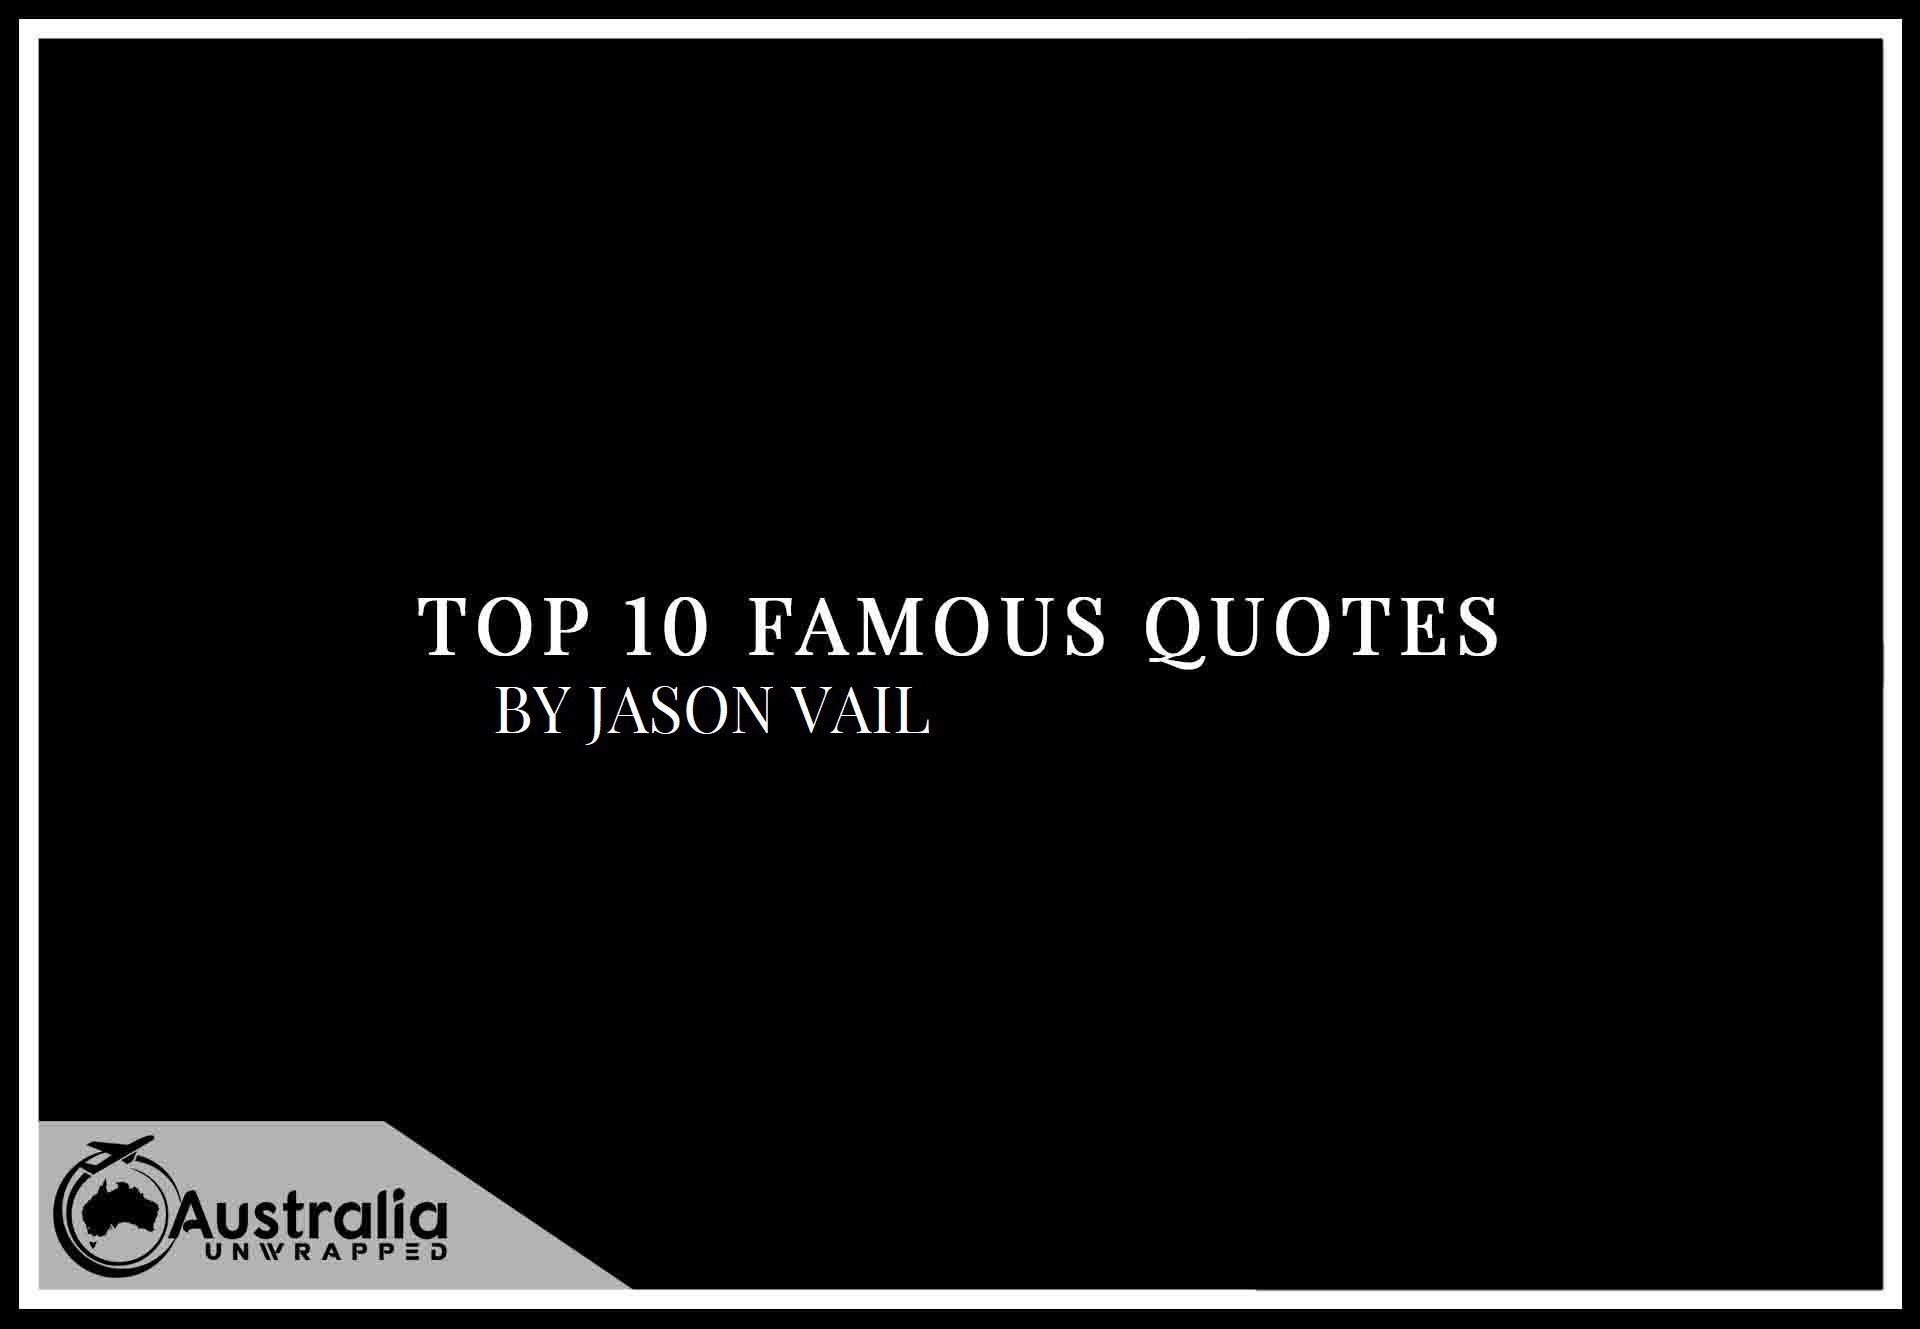 Top 10 Famous Quotes by Author Jason Vail